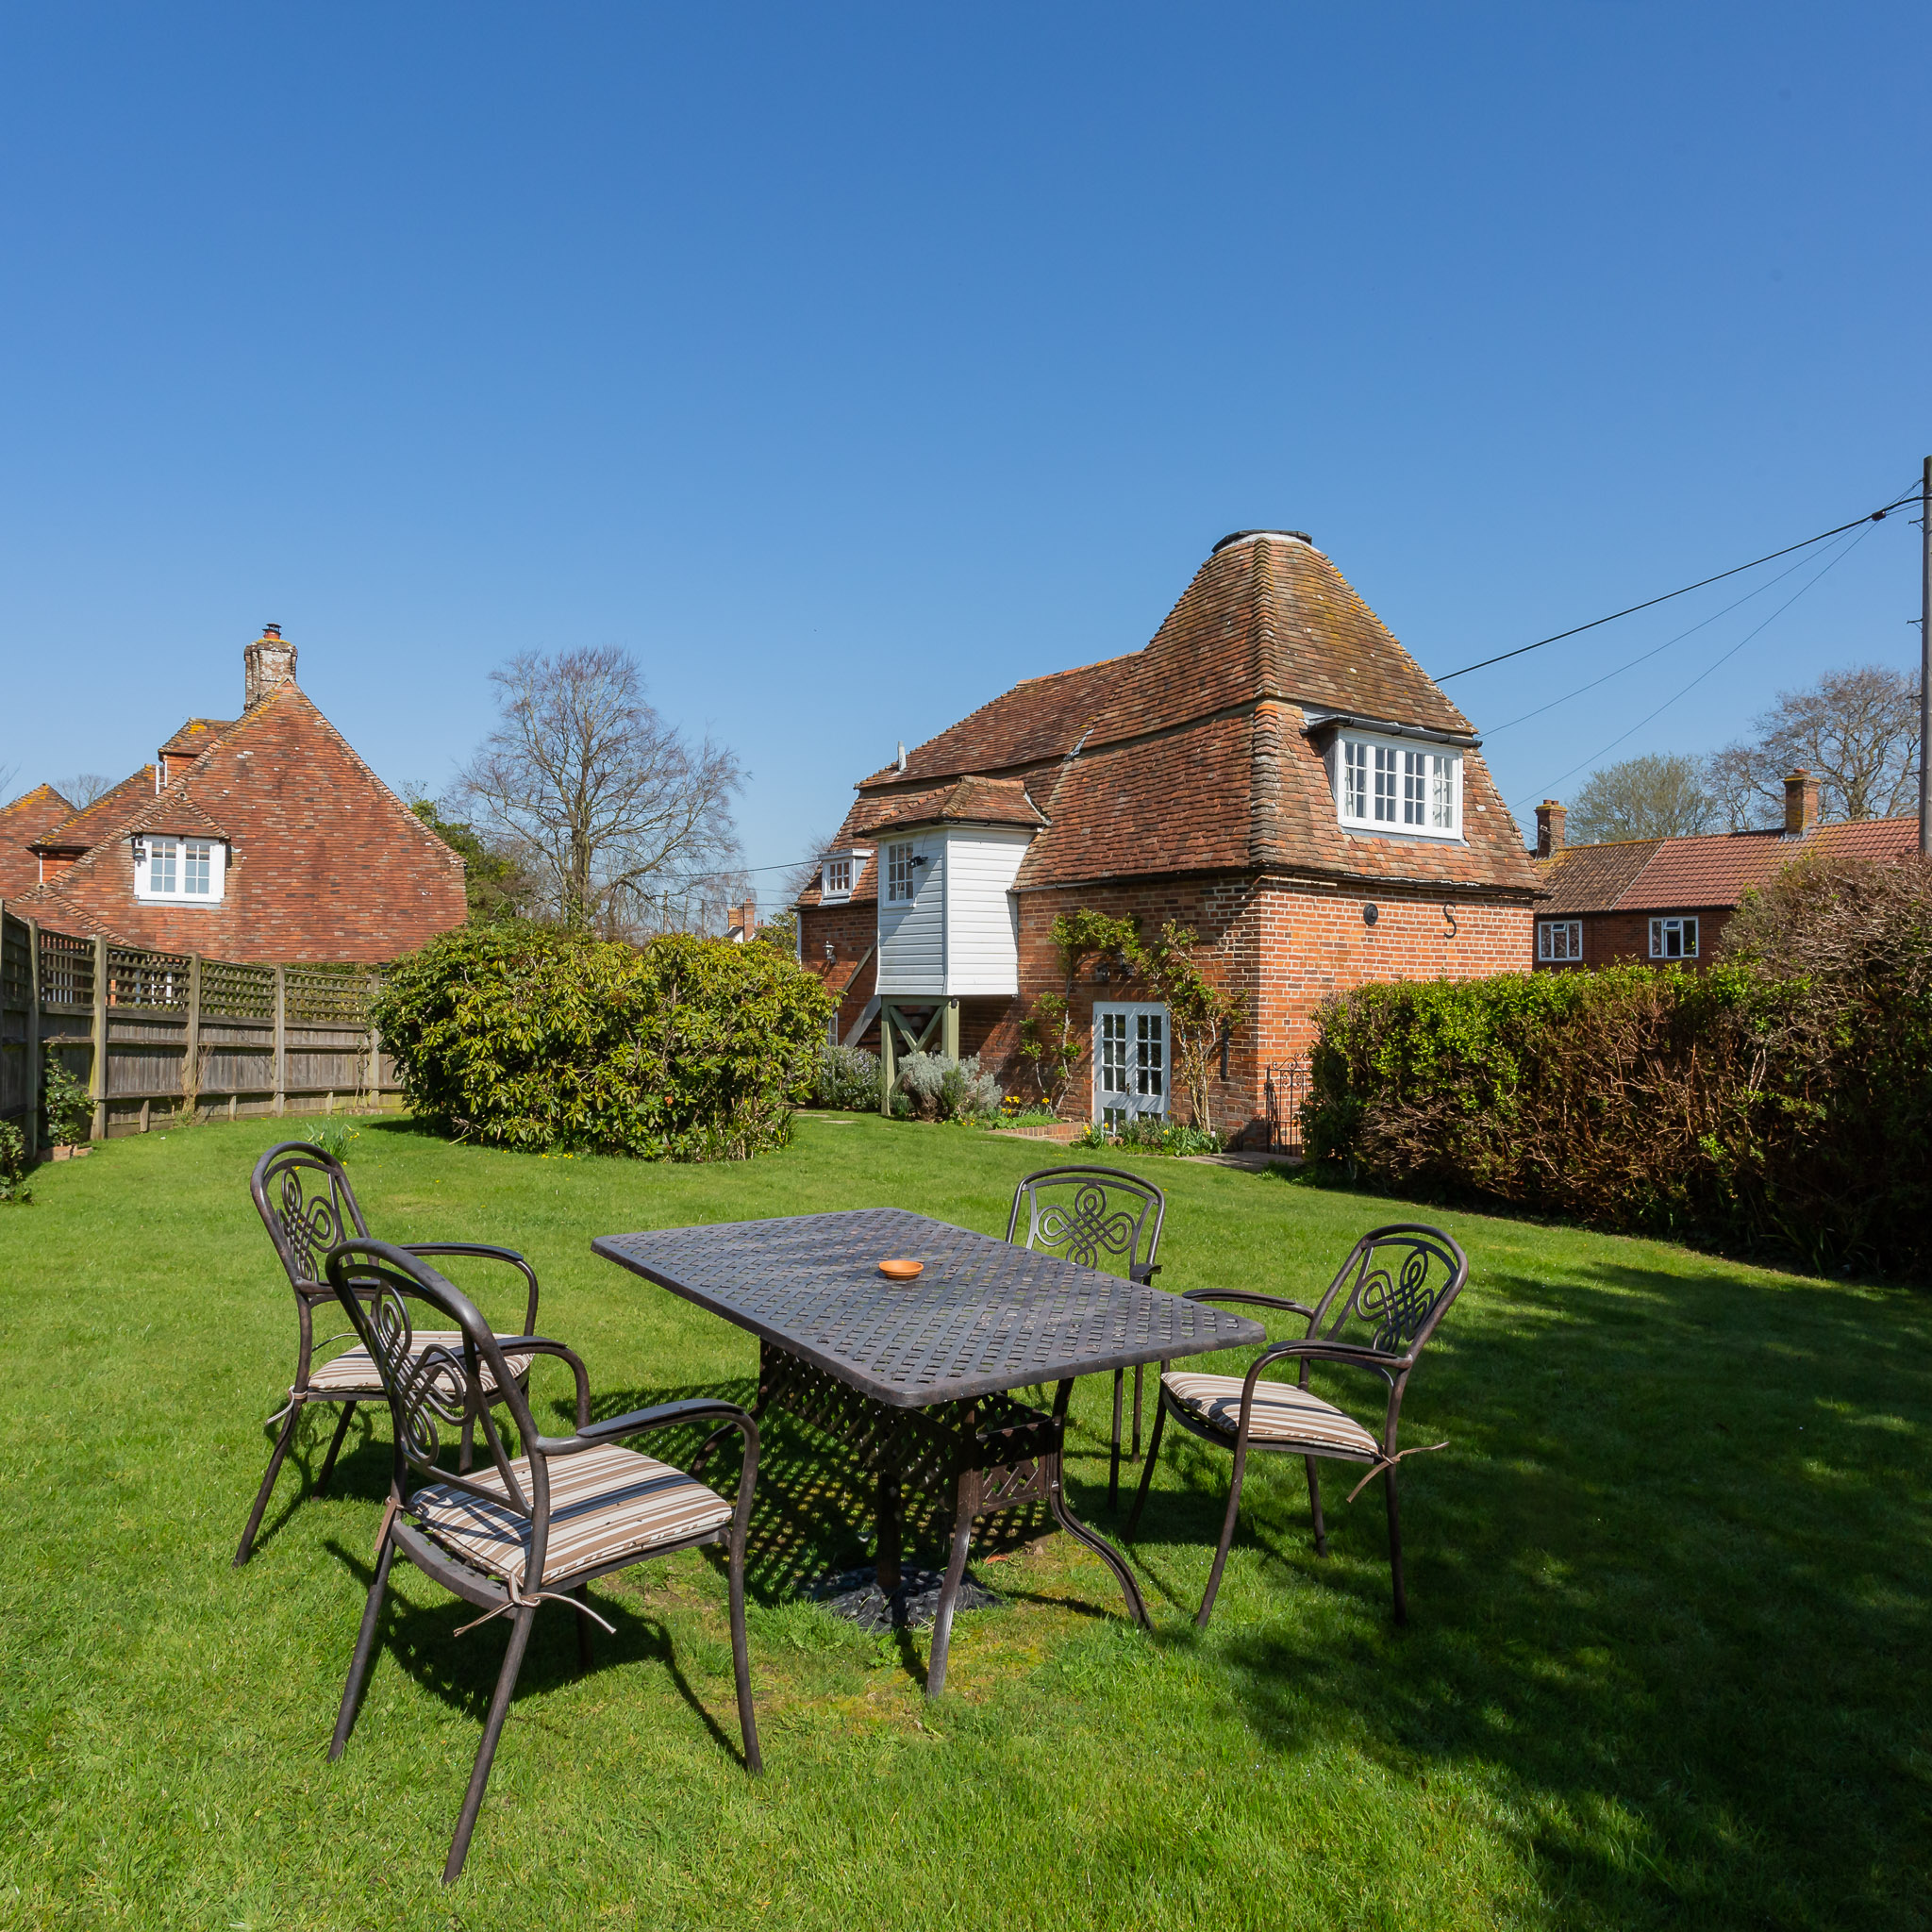 The garden is fully enclosed and well kept, with comfortable furniture and a barbecue